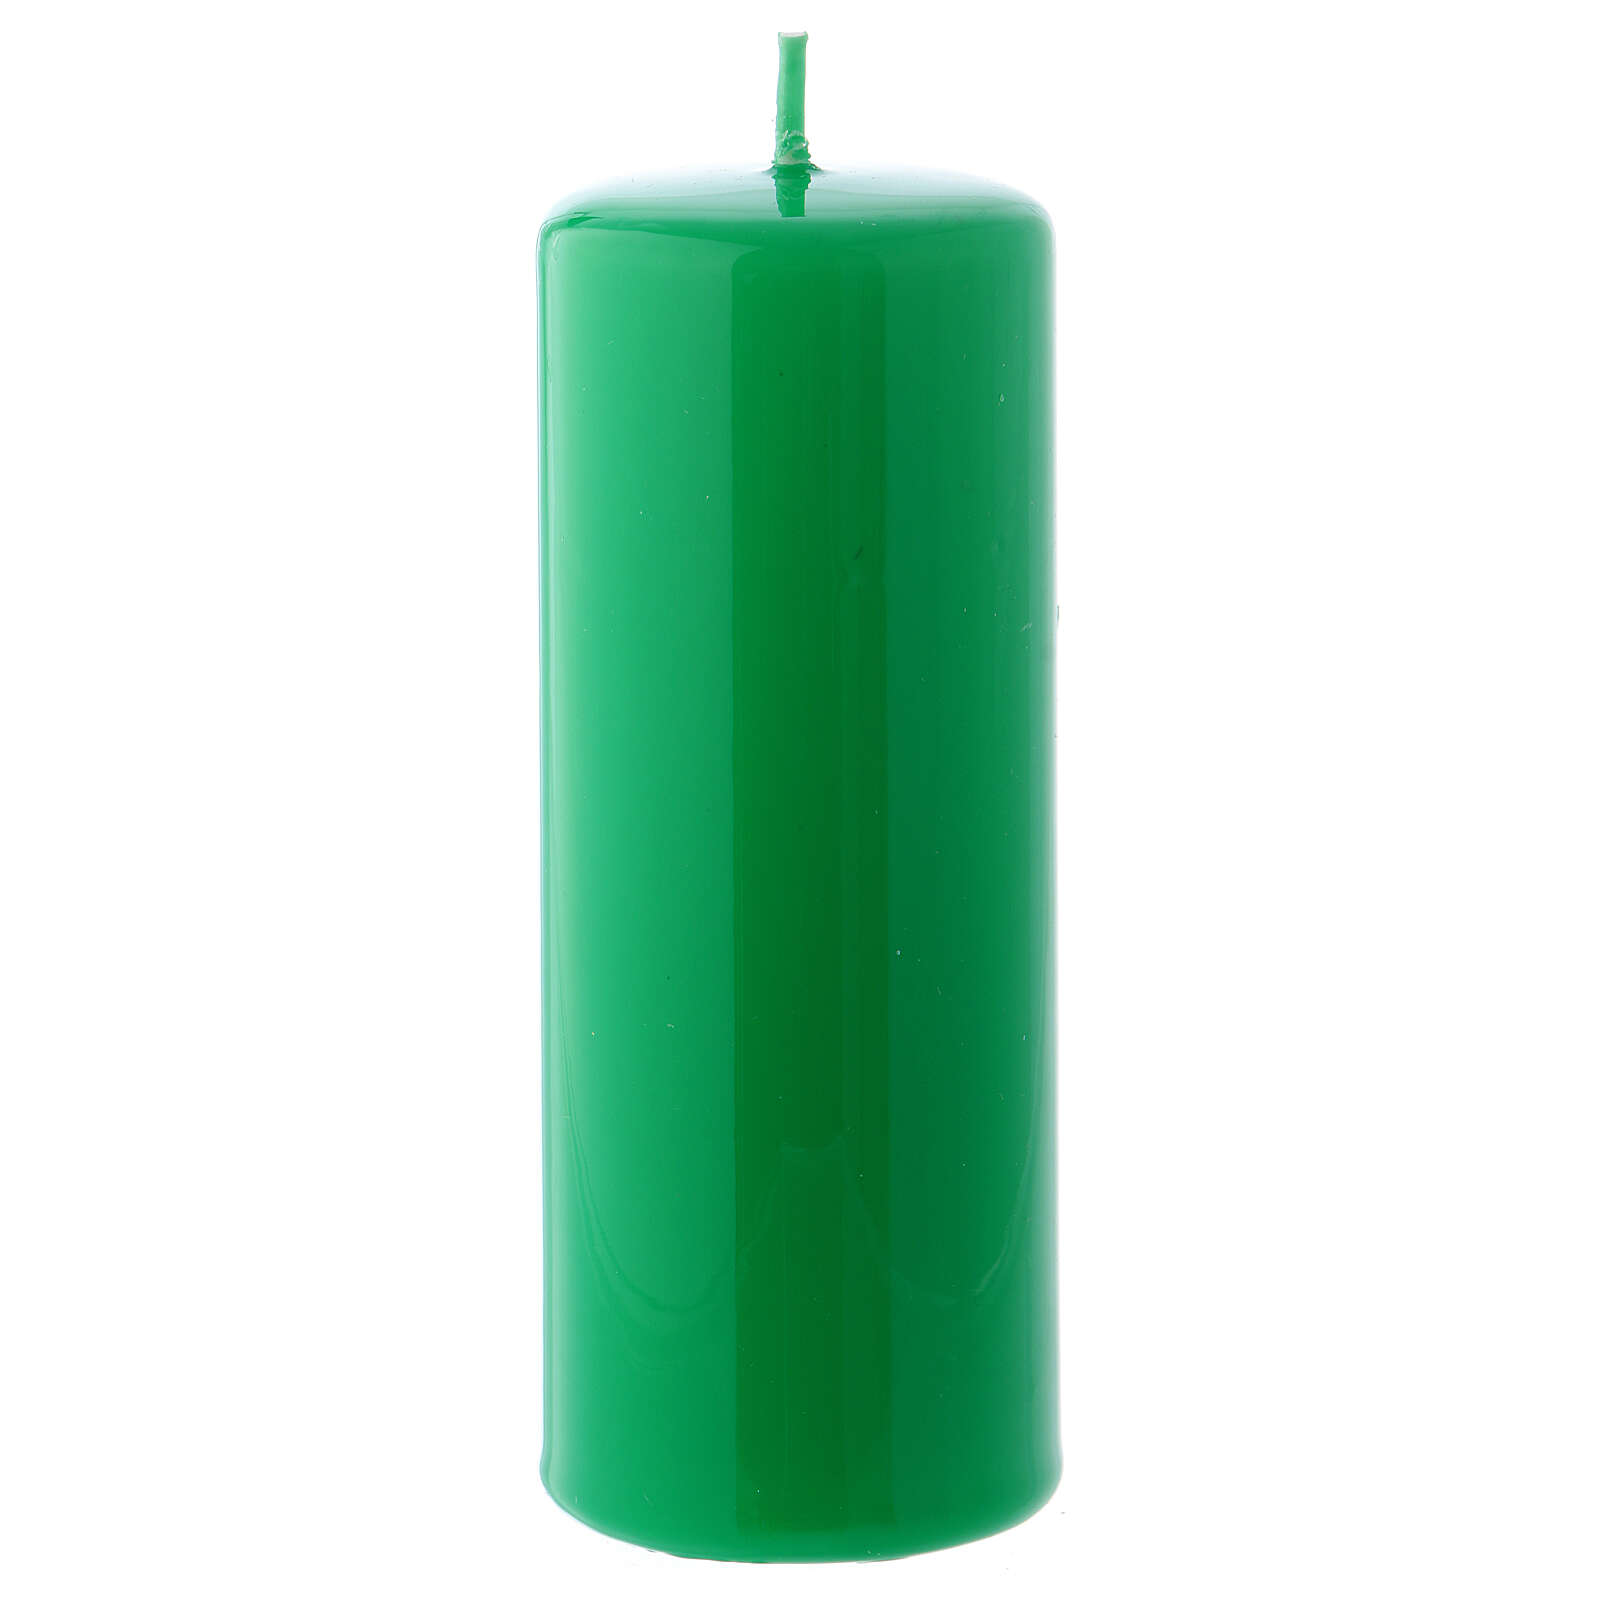 Shiny Green Pillar Candle Ceralacca, 5x13 cm 3